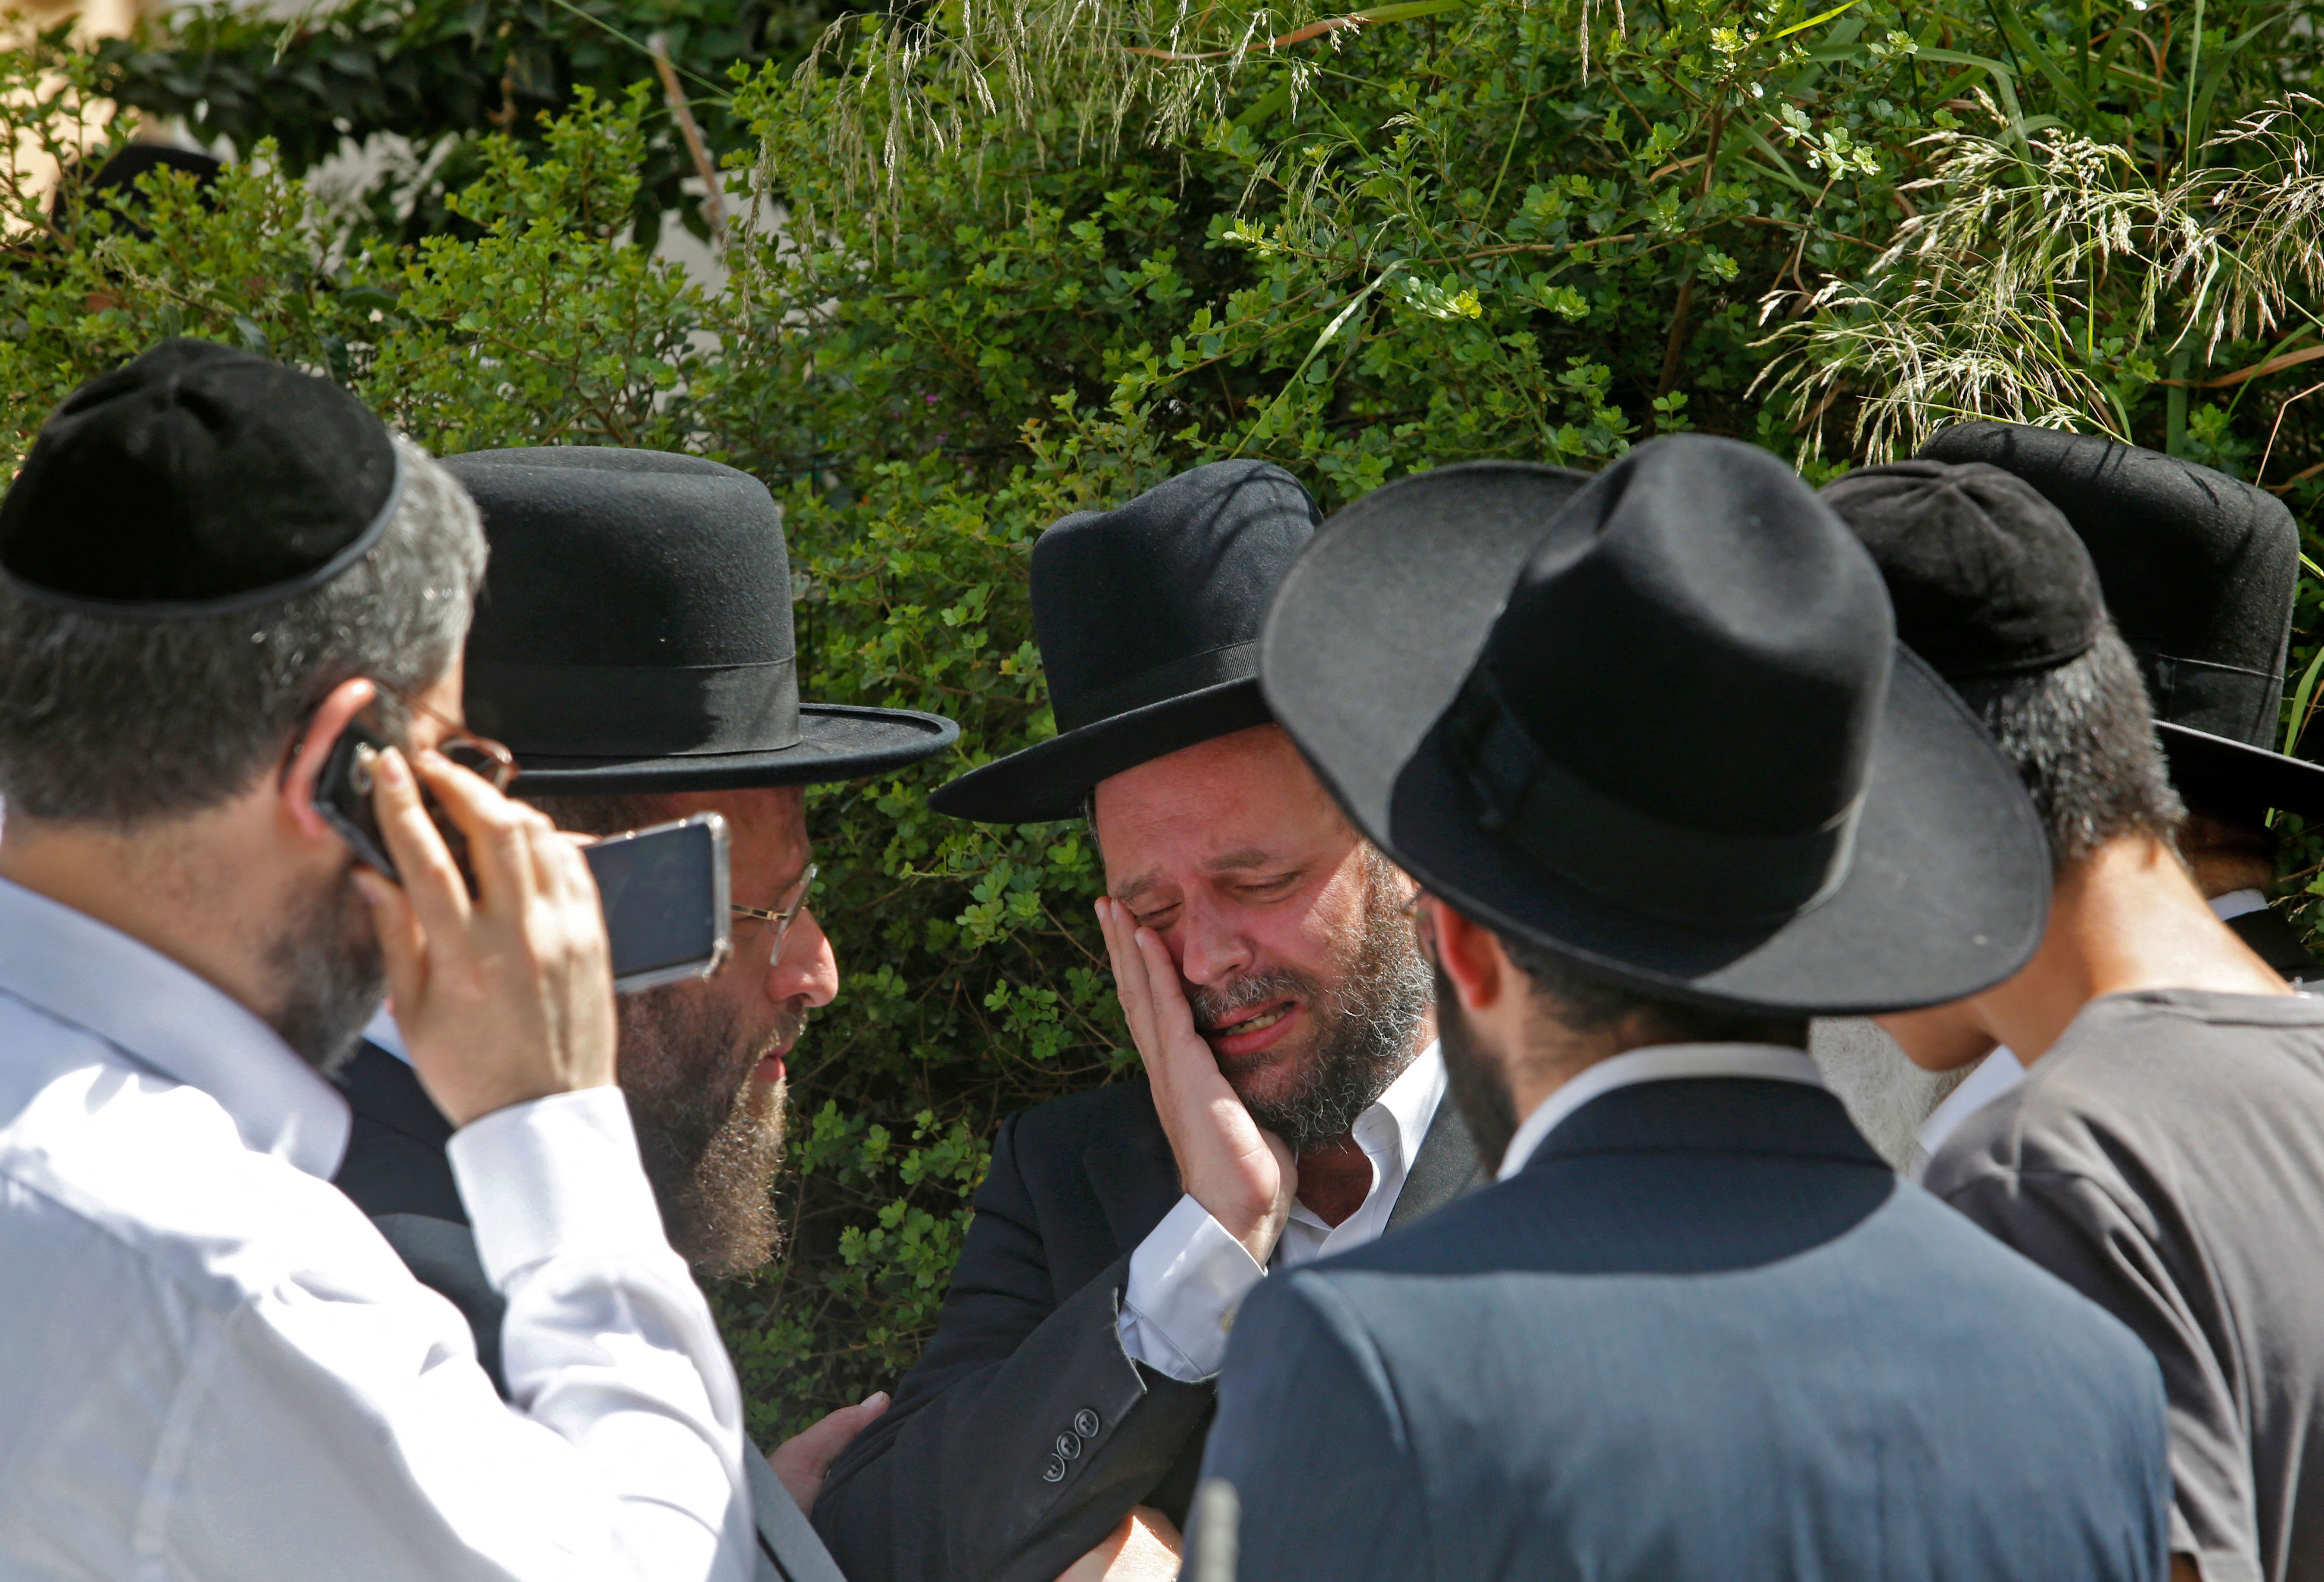 A person cries at a cemetery in Bnei Brak, Israel, on April 30 at the funeral for one of the victims of the Lag B'Omer stampede.